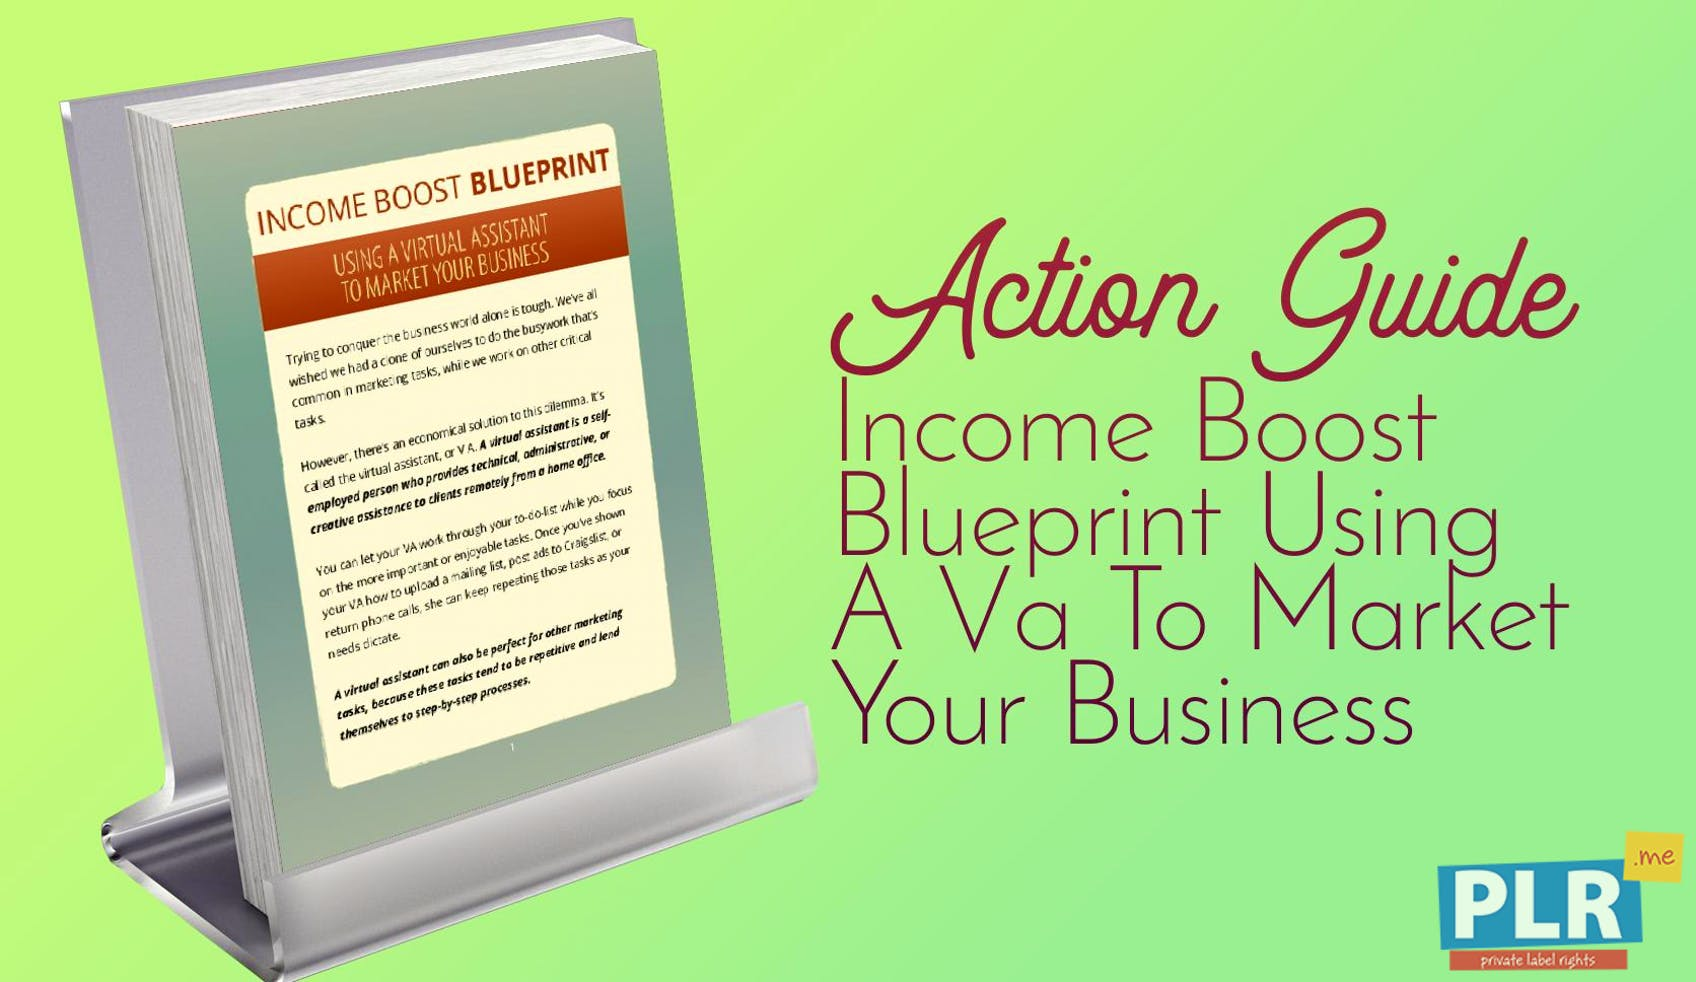 Plr action guides coaching handouts lead magnets income boost income boost blueprint using a va to market your business malvernweather Image collections